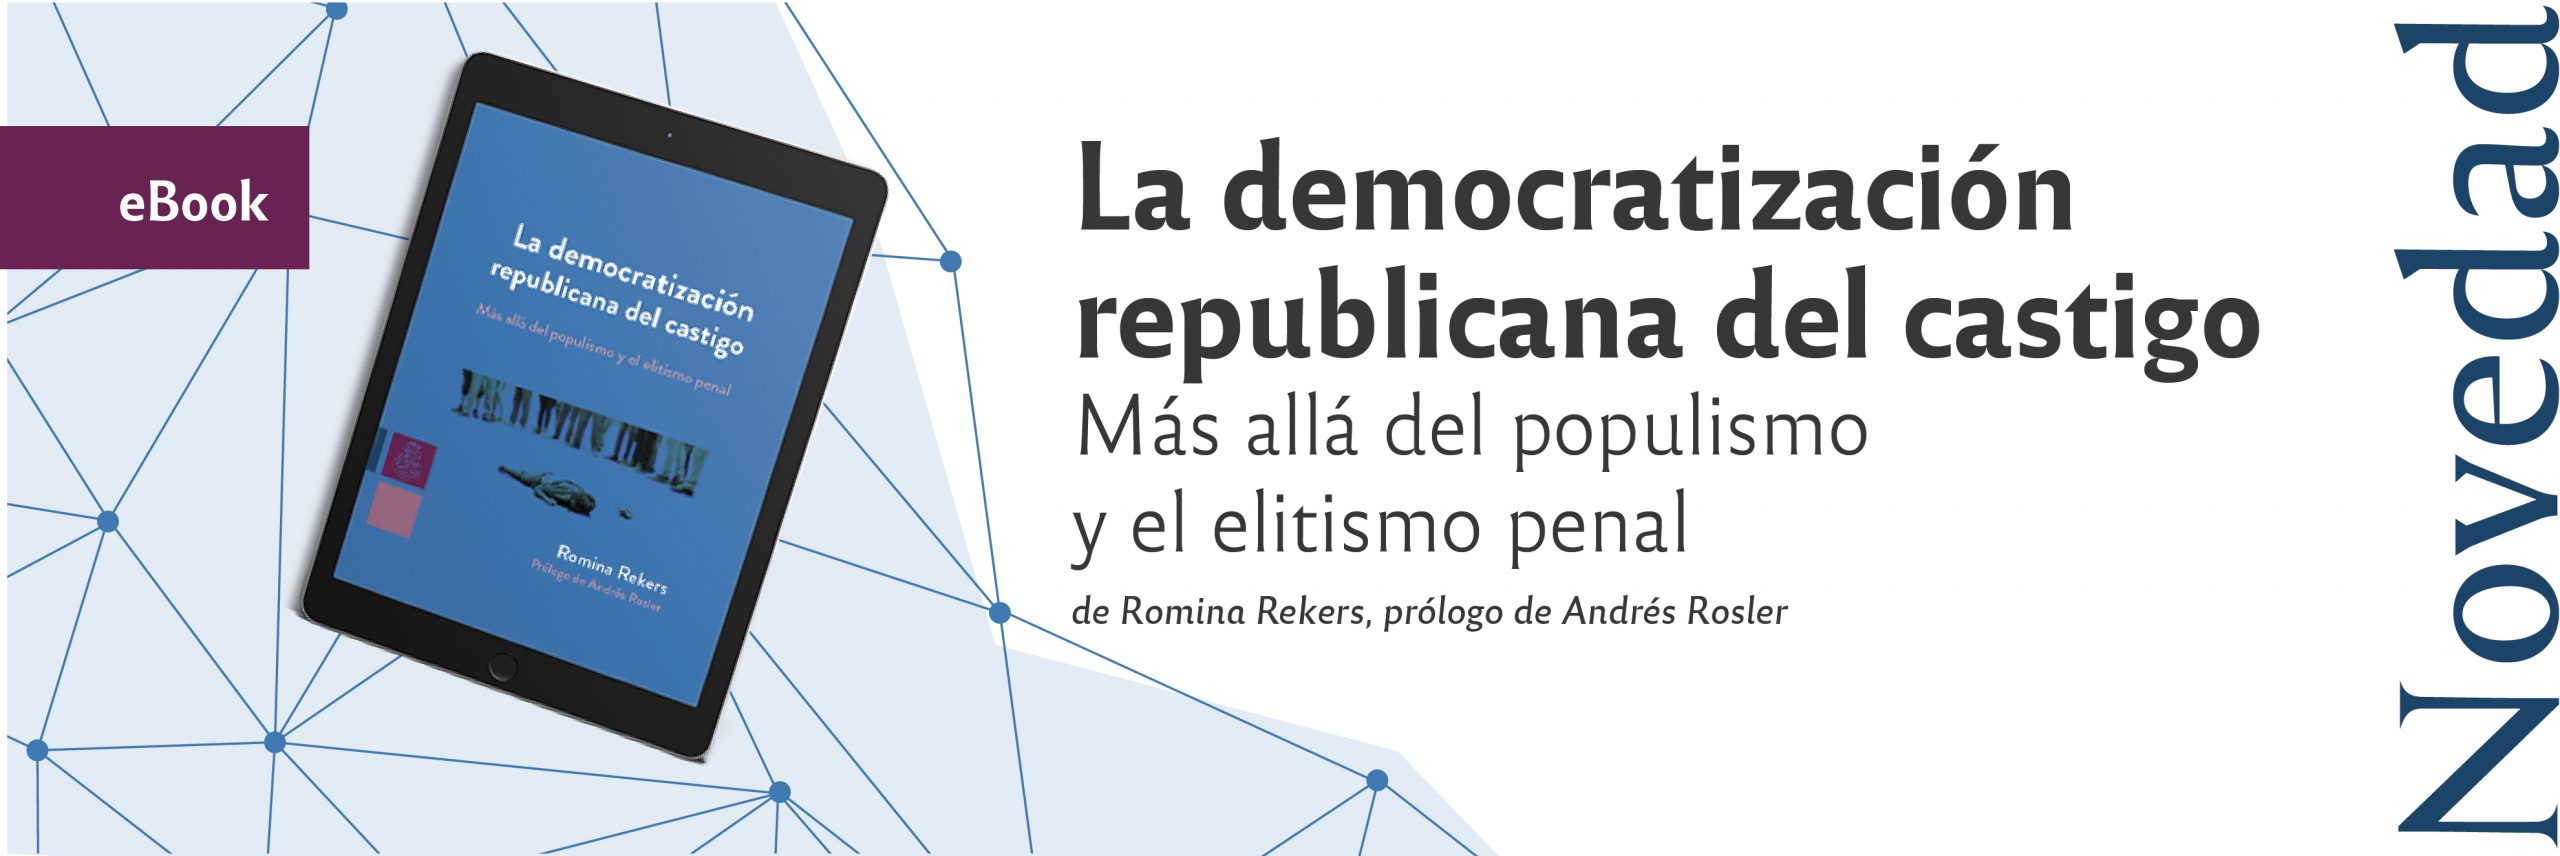 La democratización republicana del castigo (ebook)